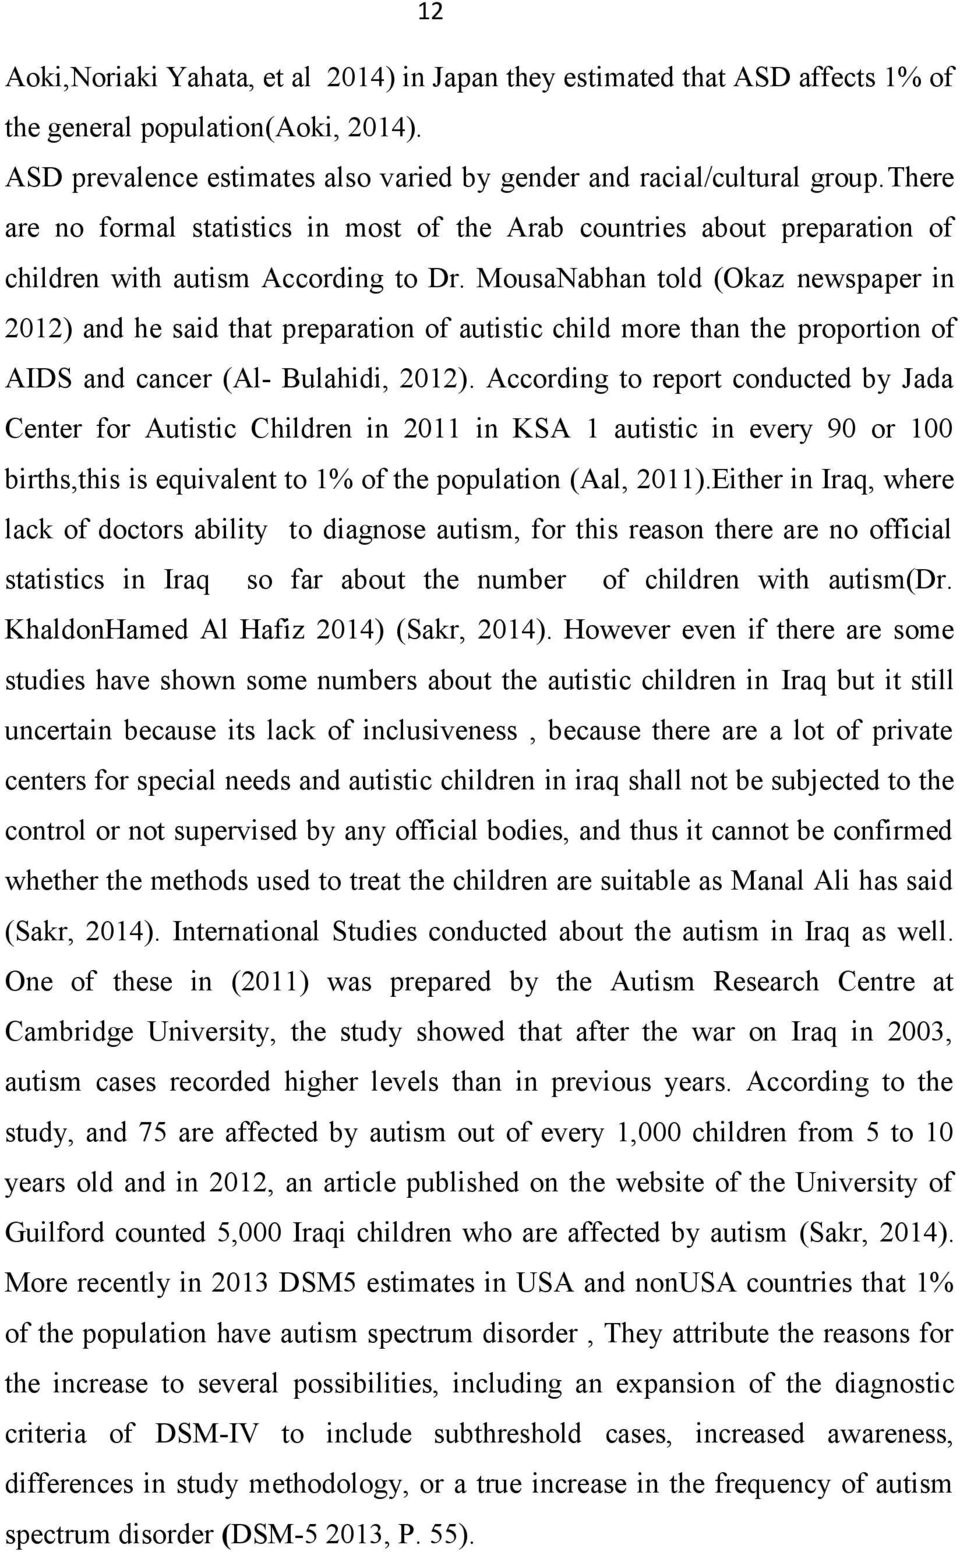 MousaNabhan told (Okaz newspaper in 2012) and he said that preparation of autistic child more than the proportion of AIDS and cancer (Al- Bulahidi, 2012).